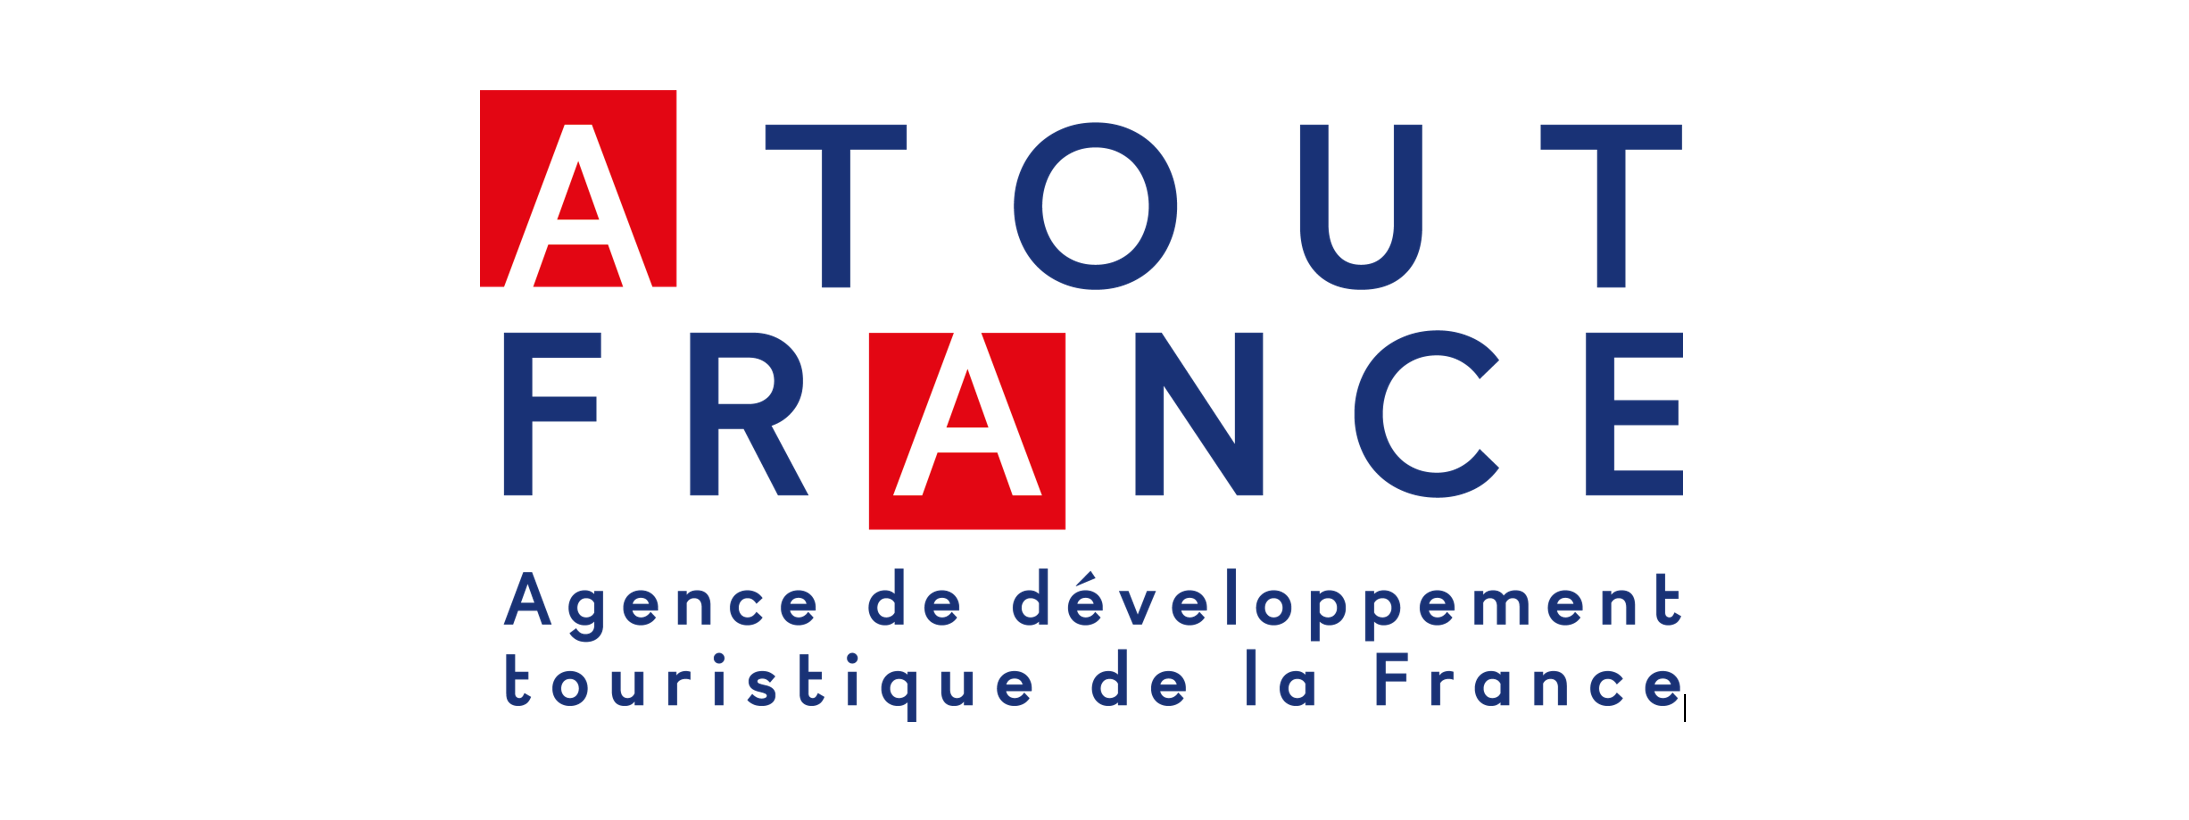 Atout France re-joins European Travel Commission with Europe's tourism recovery underway